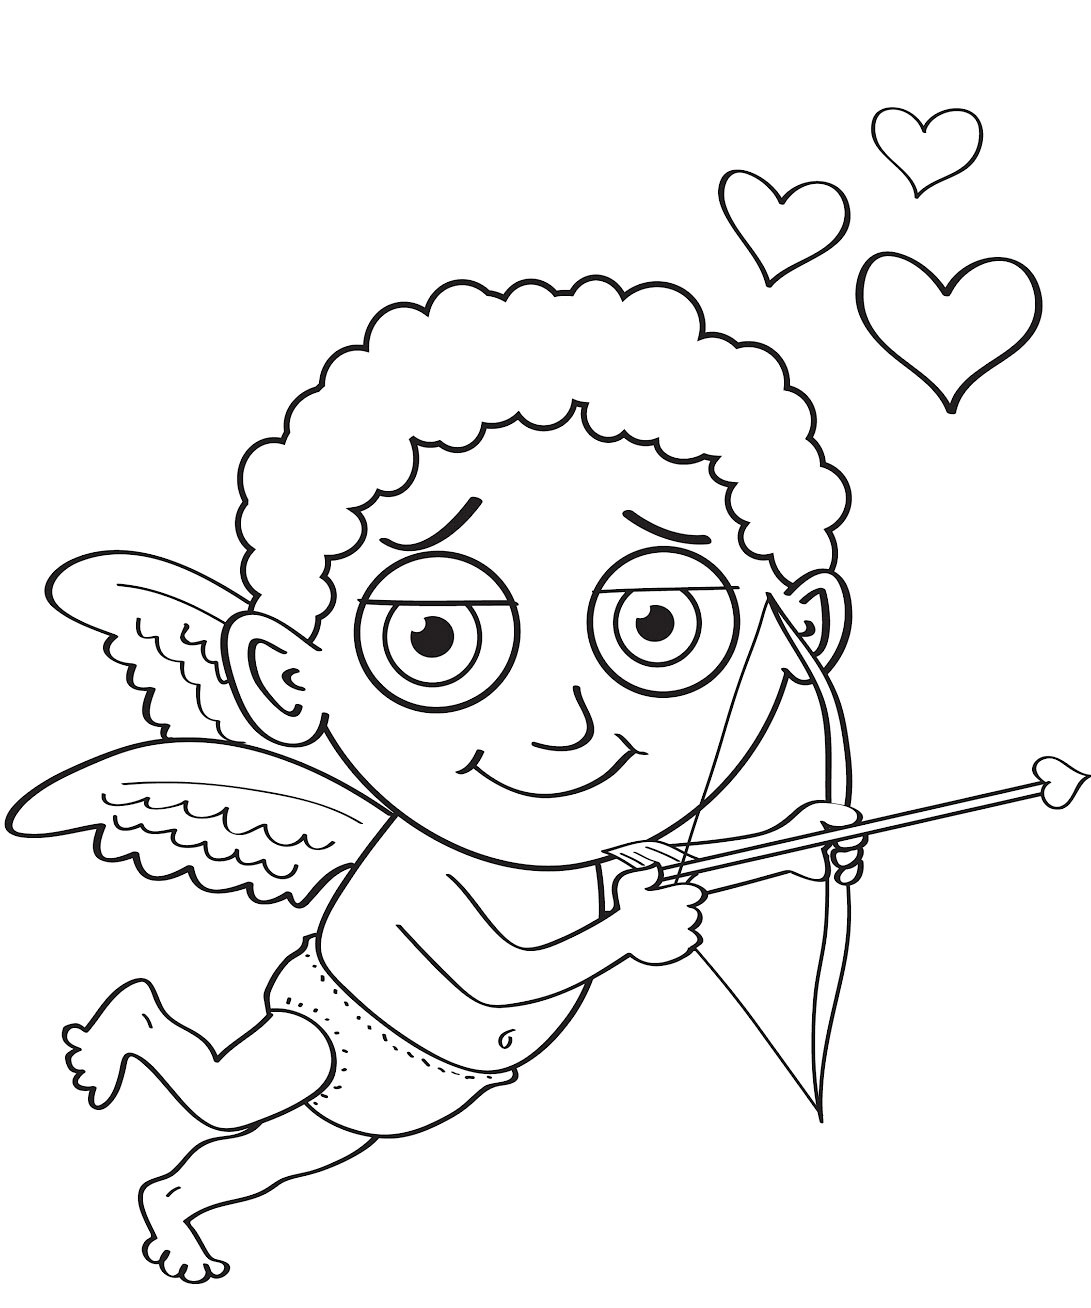 valentines day cupid coloring page printable cupid coloring pages free